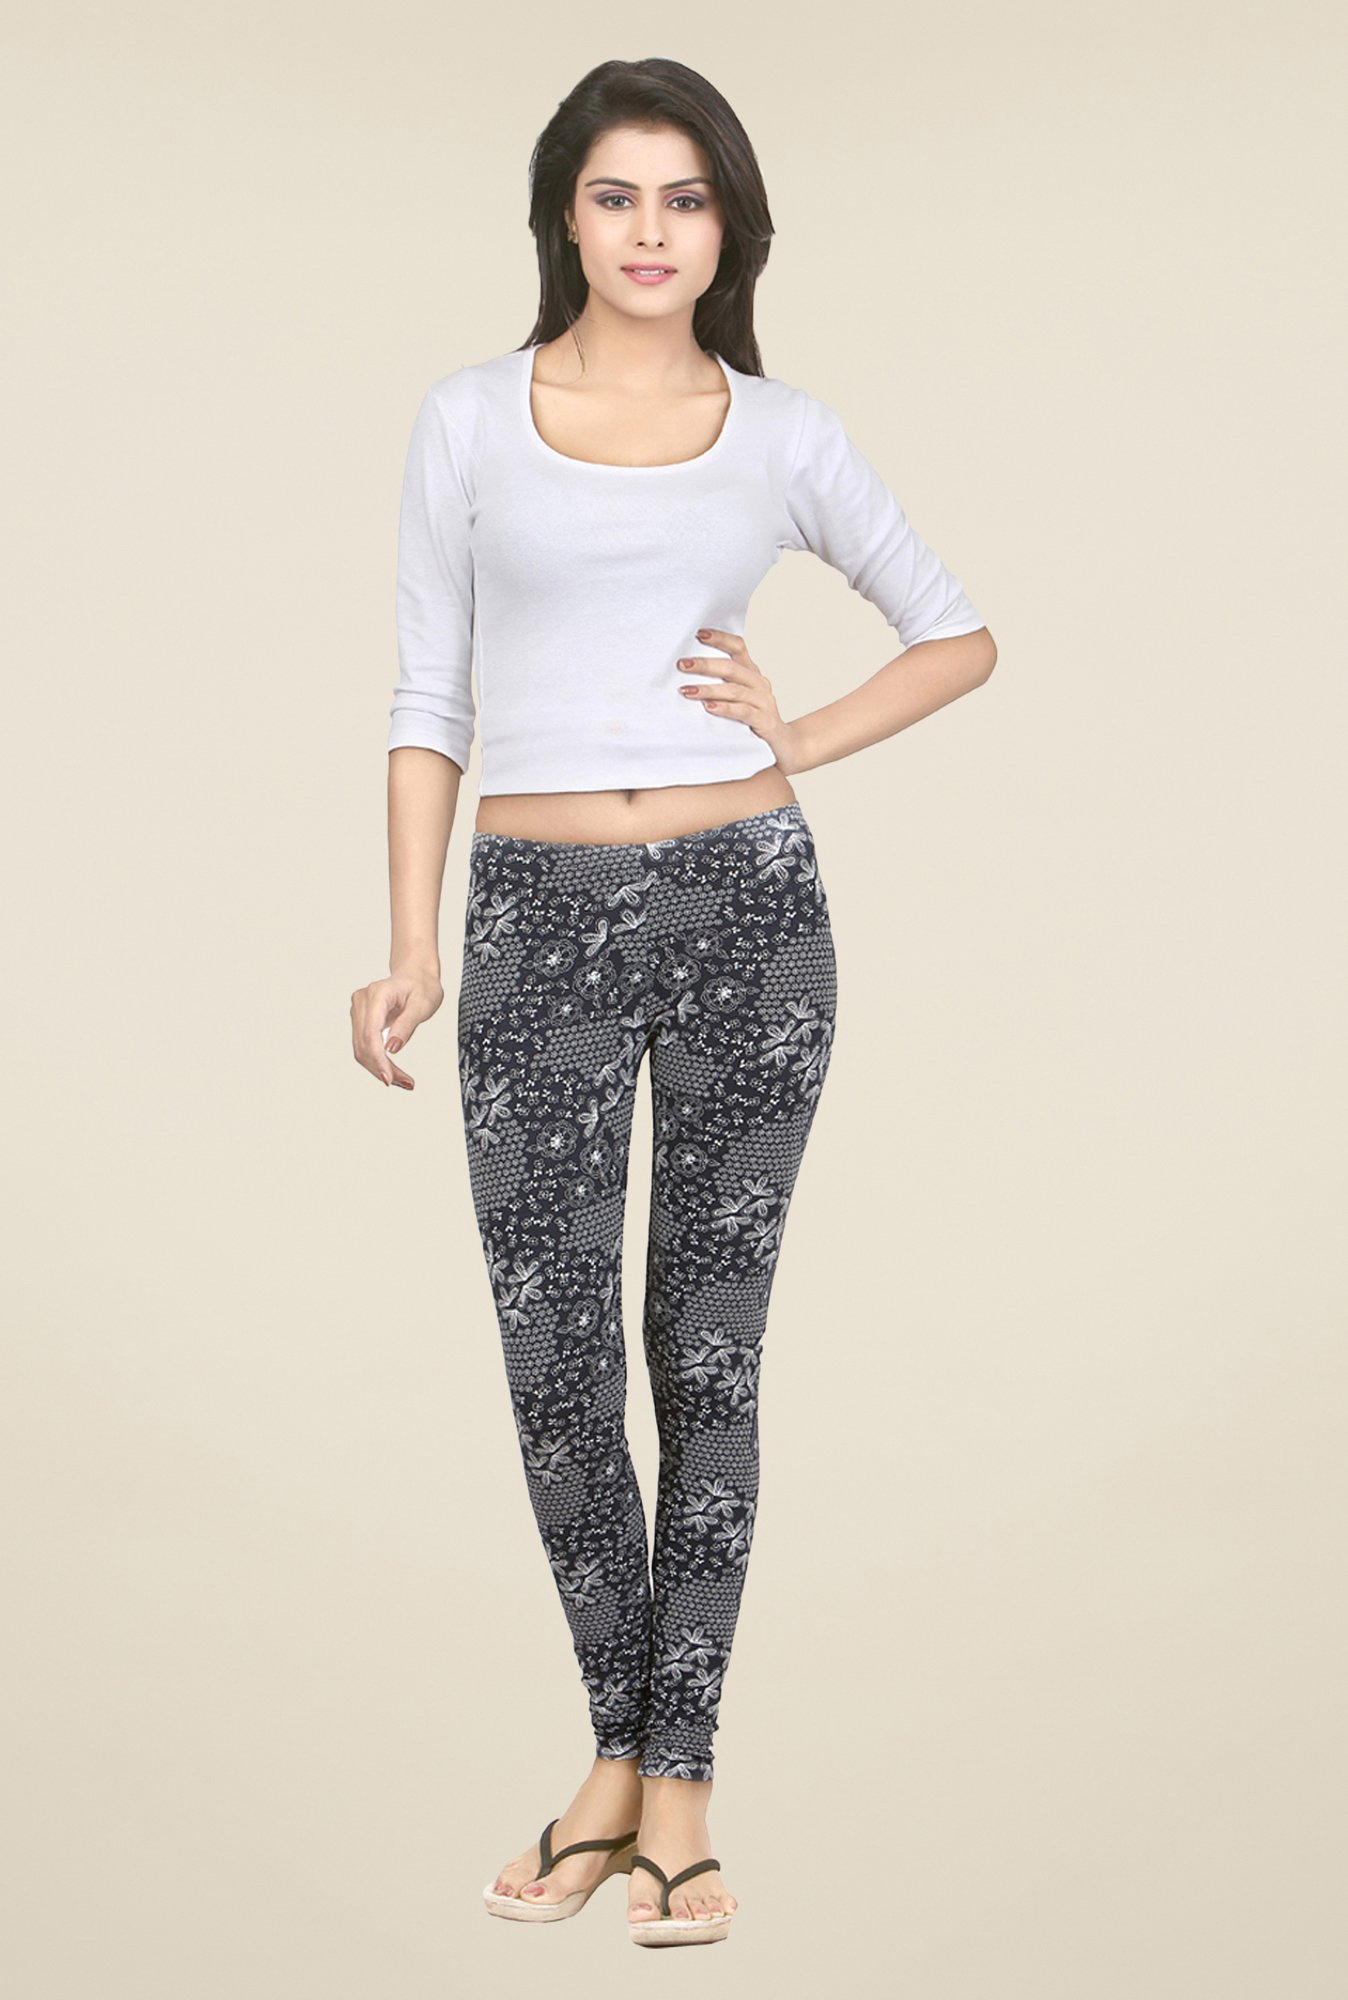 Sweet Dreams Jet Black Printed Leggings